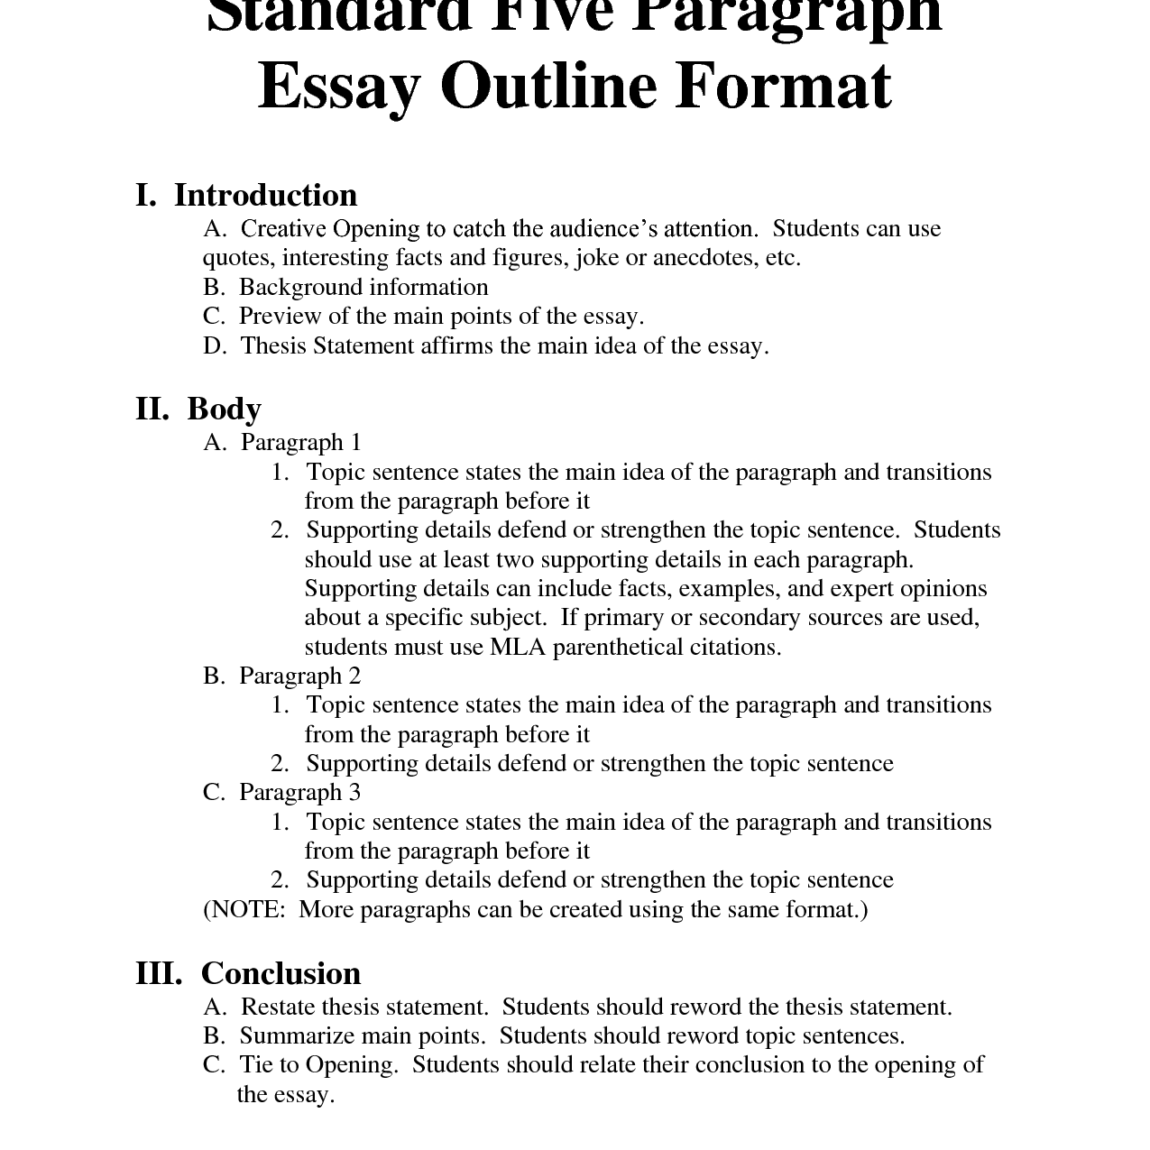 001 Essay Example Joke Five Page Outline Paragraph Blog And Inside Of Amazing Writer Joker In Hindi Jokes English Full